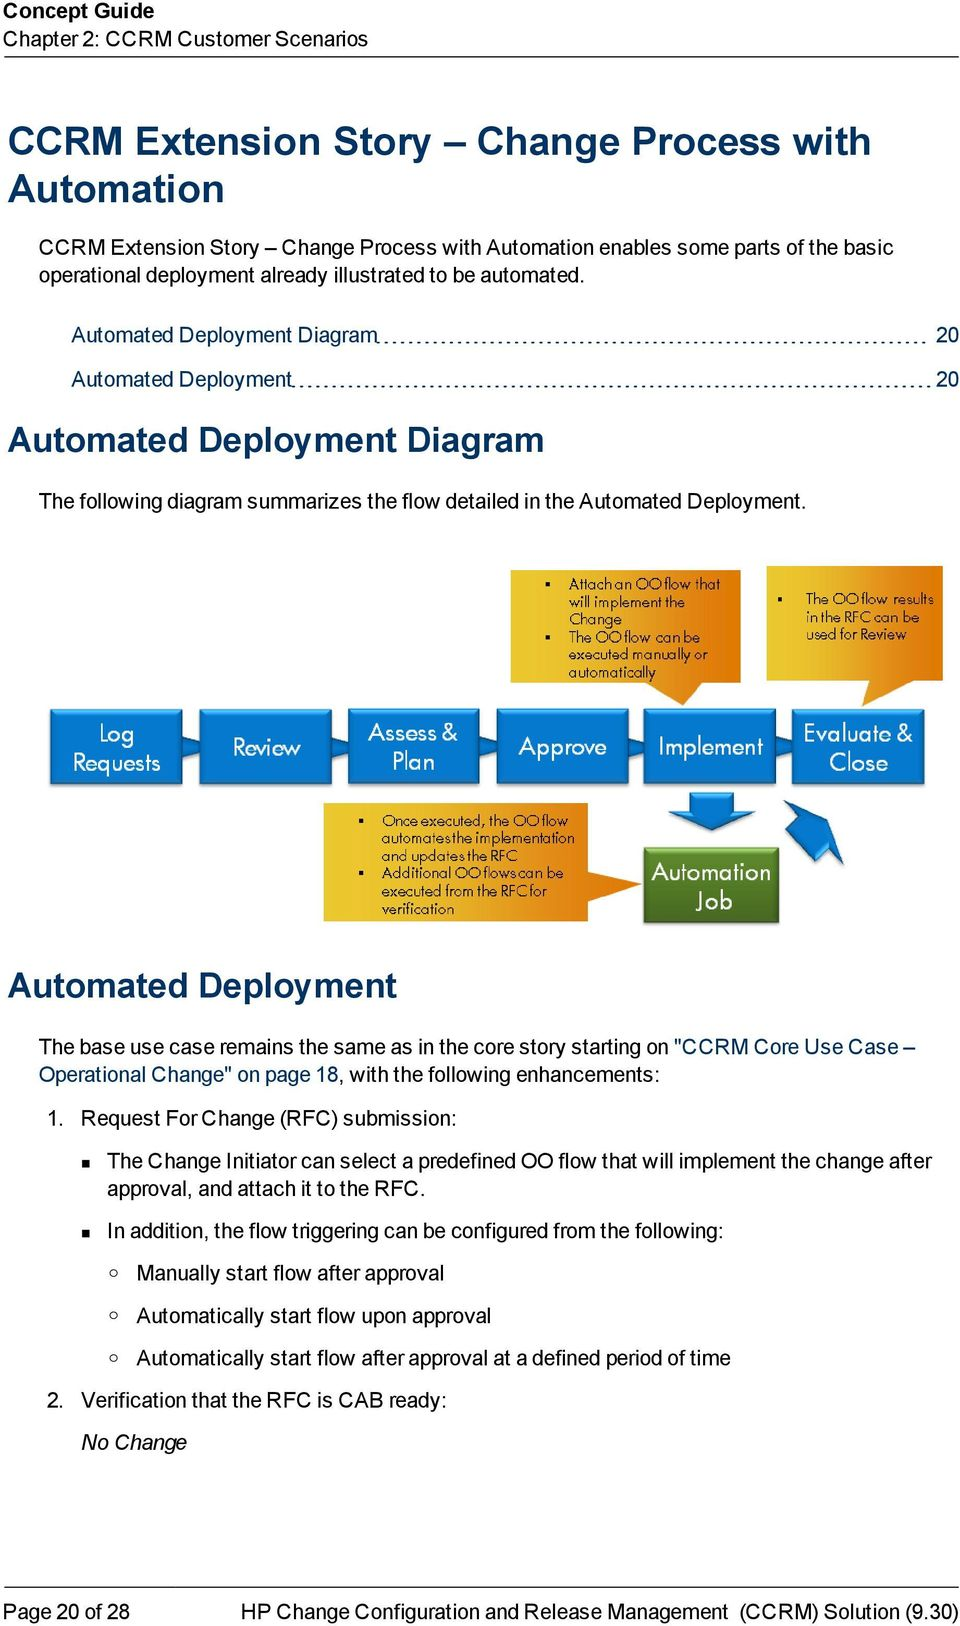 Automated Deployment Diagram 20 Automated Deployment 20 Automated Deployment Diagram The following diagram summarizes the flow detailed in the Automated Deployment.